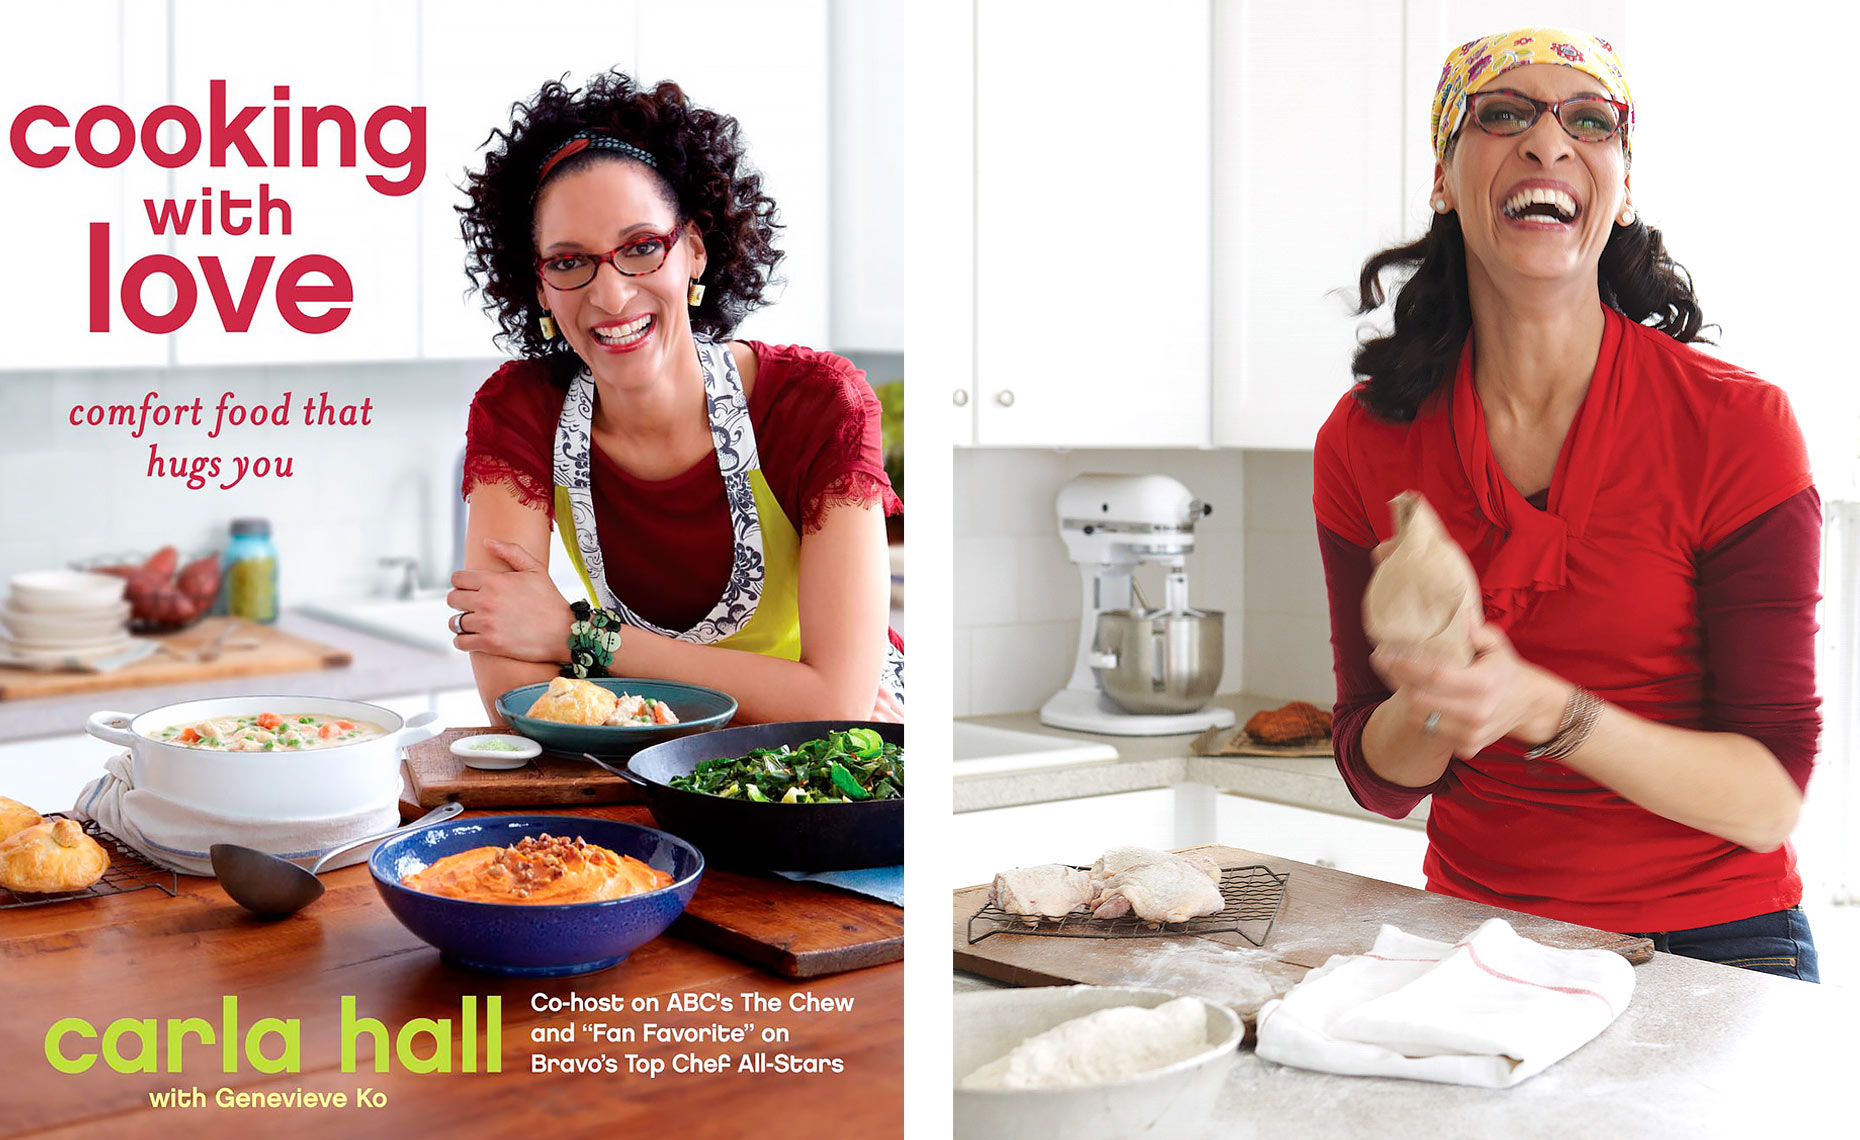 FOOD-Cookbooks48-Carla-Hall-Cookbook